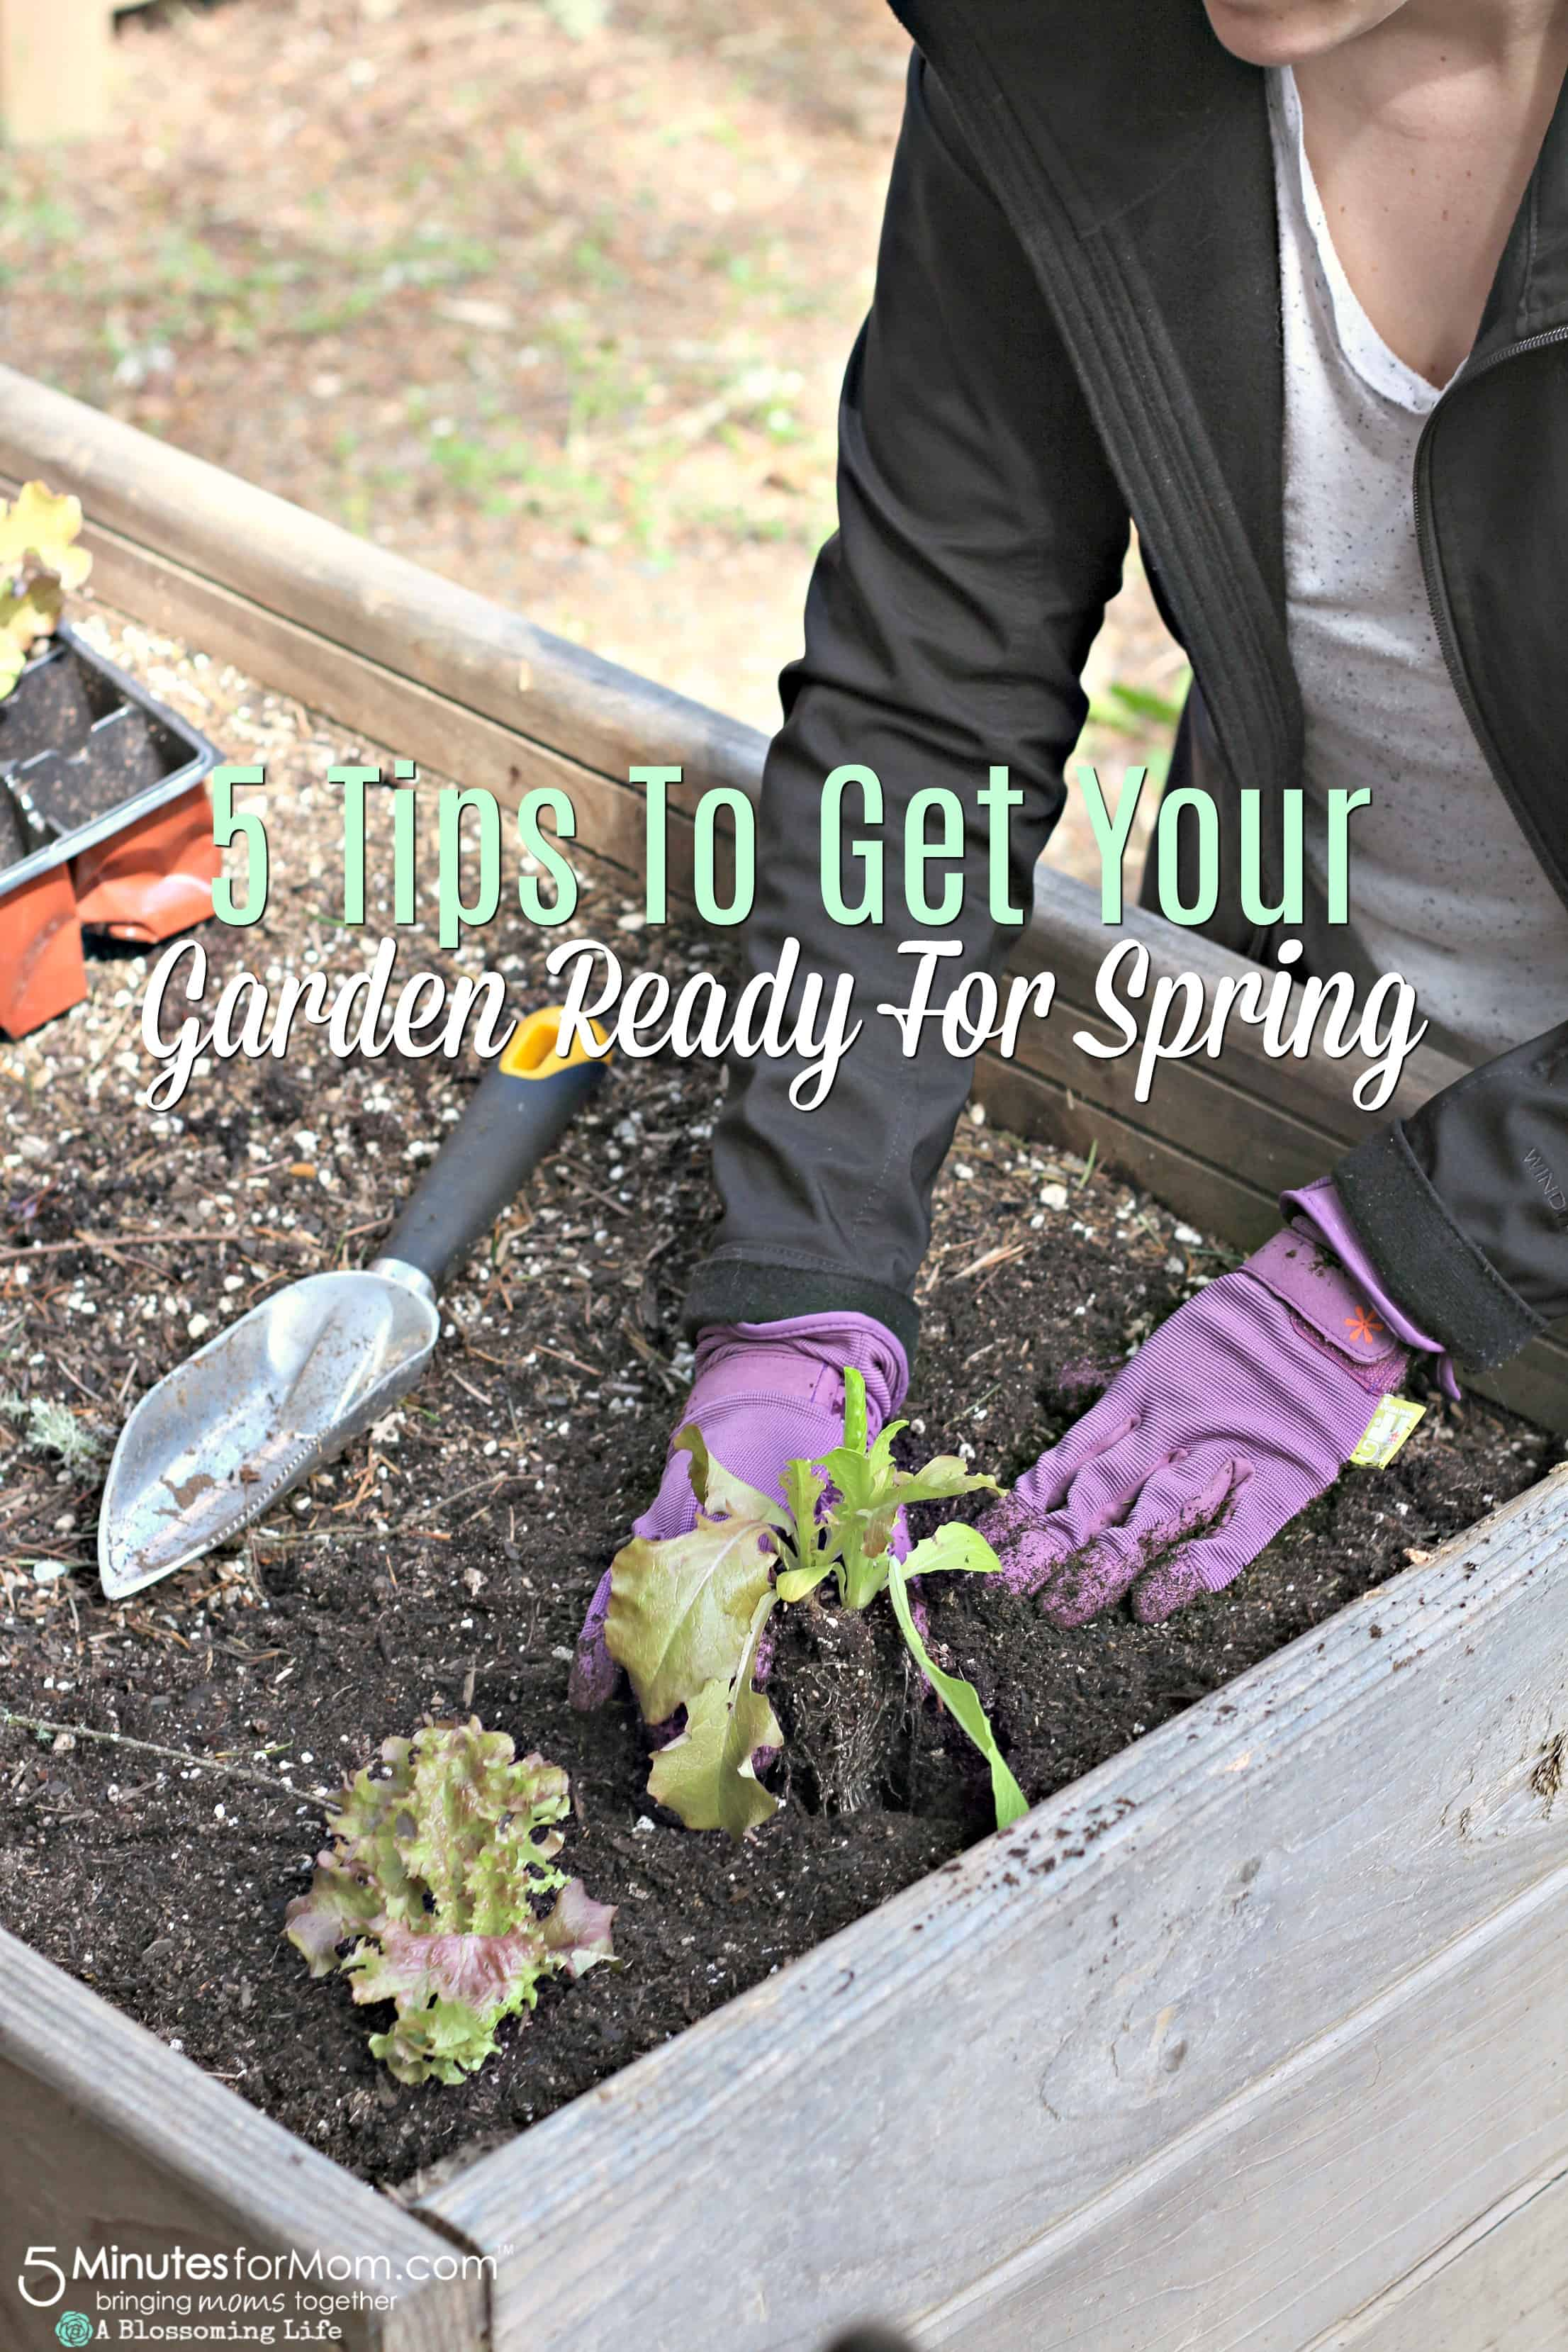 Spring Gardening Tips - 5 Ways To Get Your Garden Ready For Spring